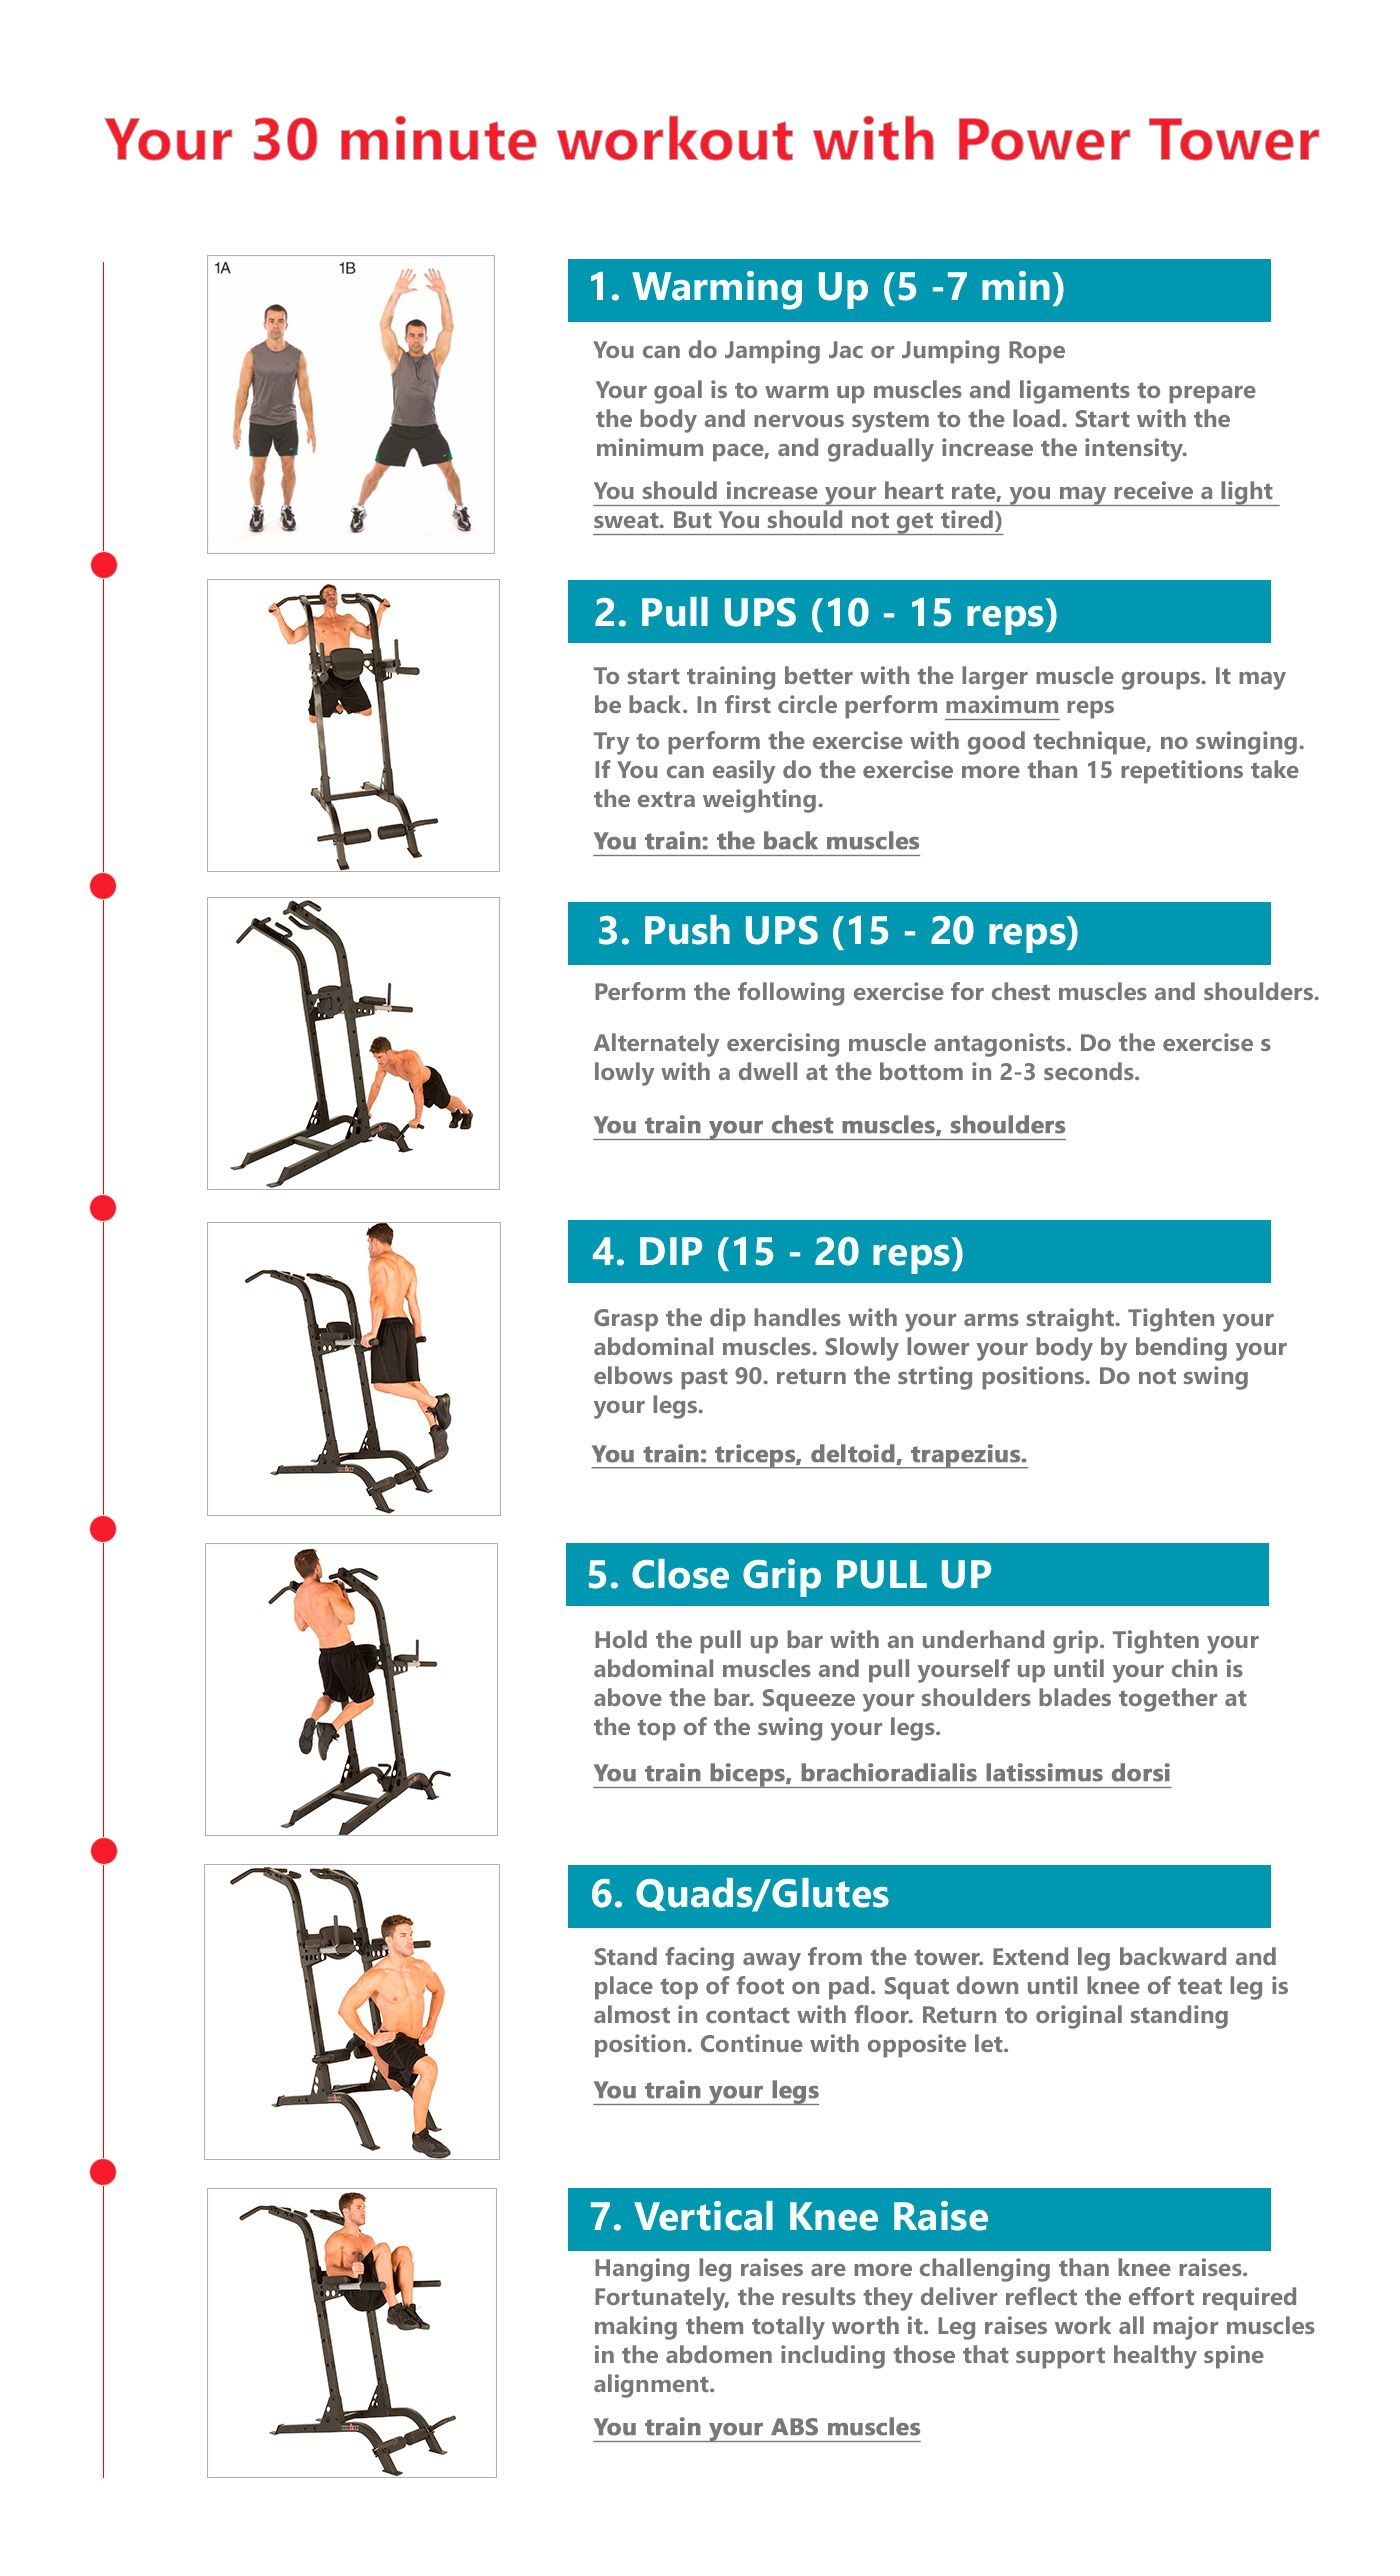 Fast Workout With Power Tower Power tower workout, 30